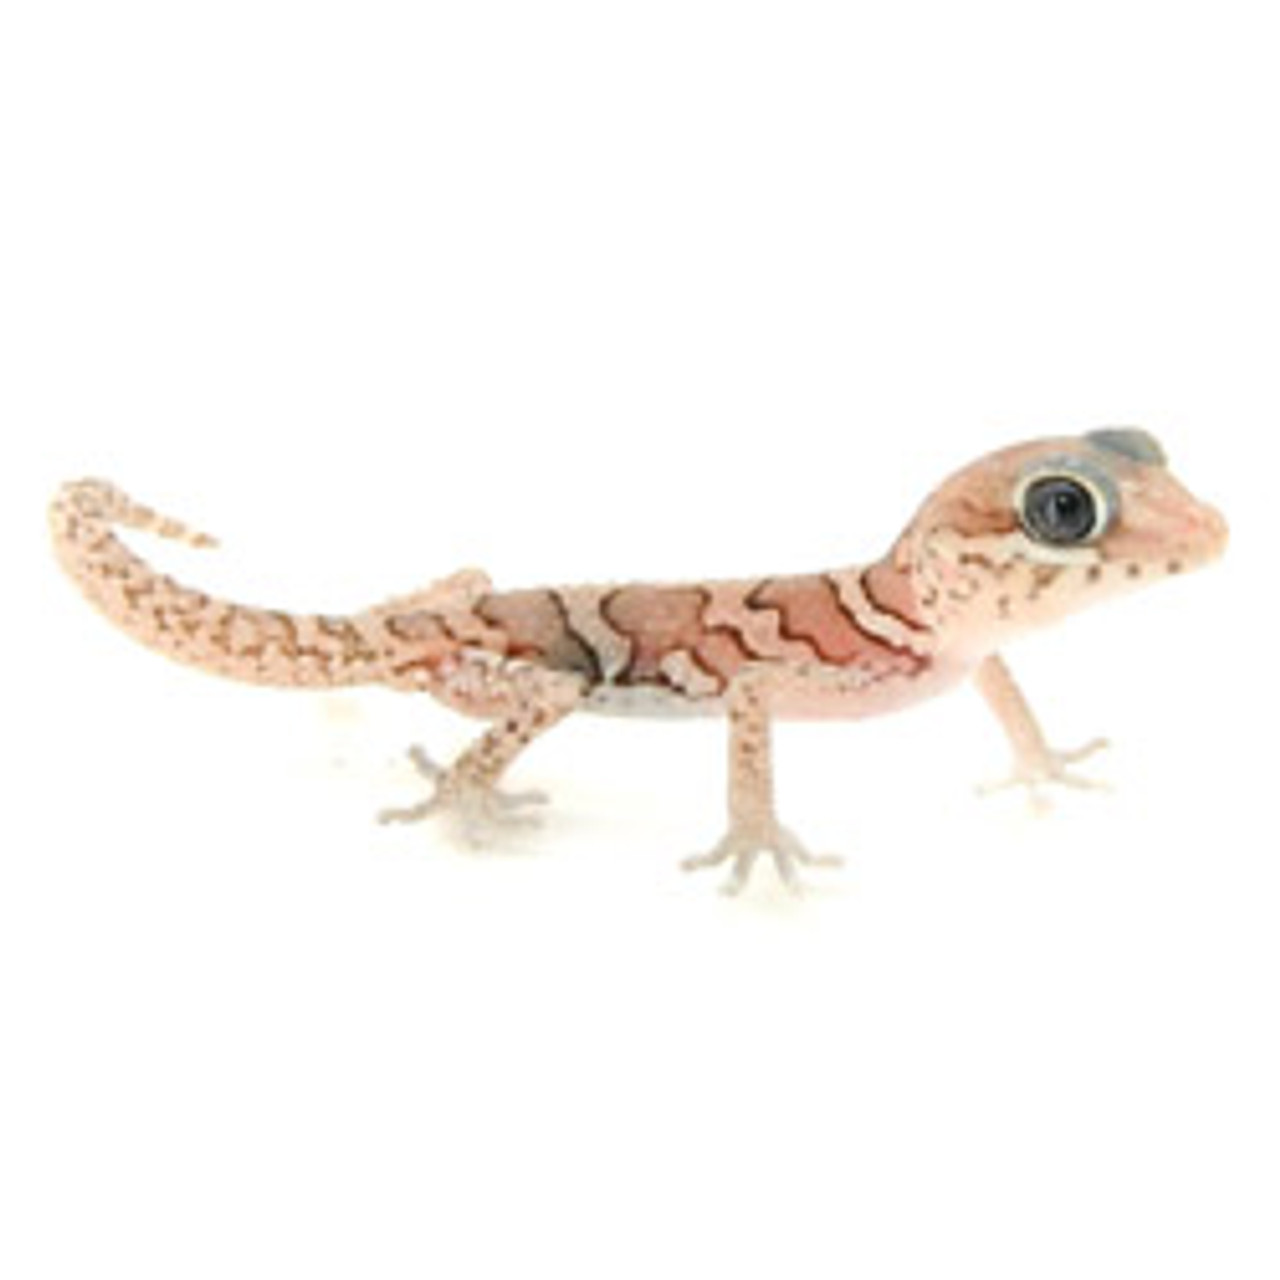 Anerythristic Panther Gecko (Pareodura pictus) Baby